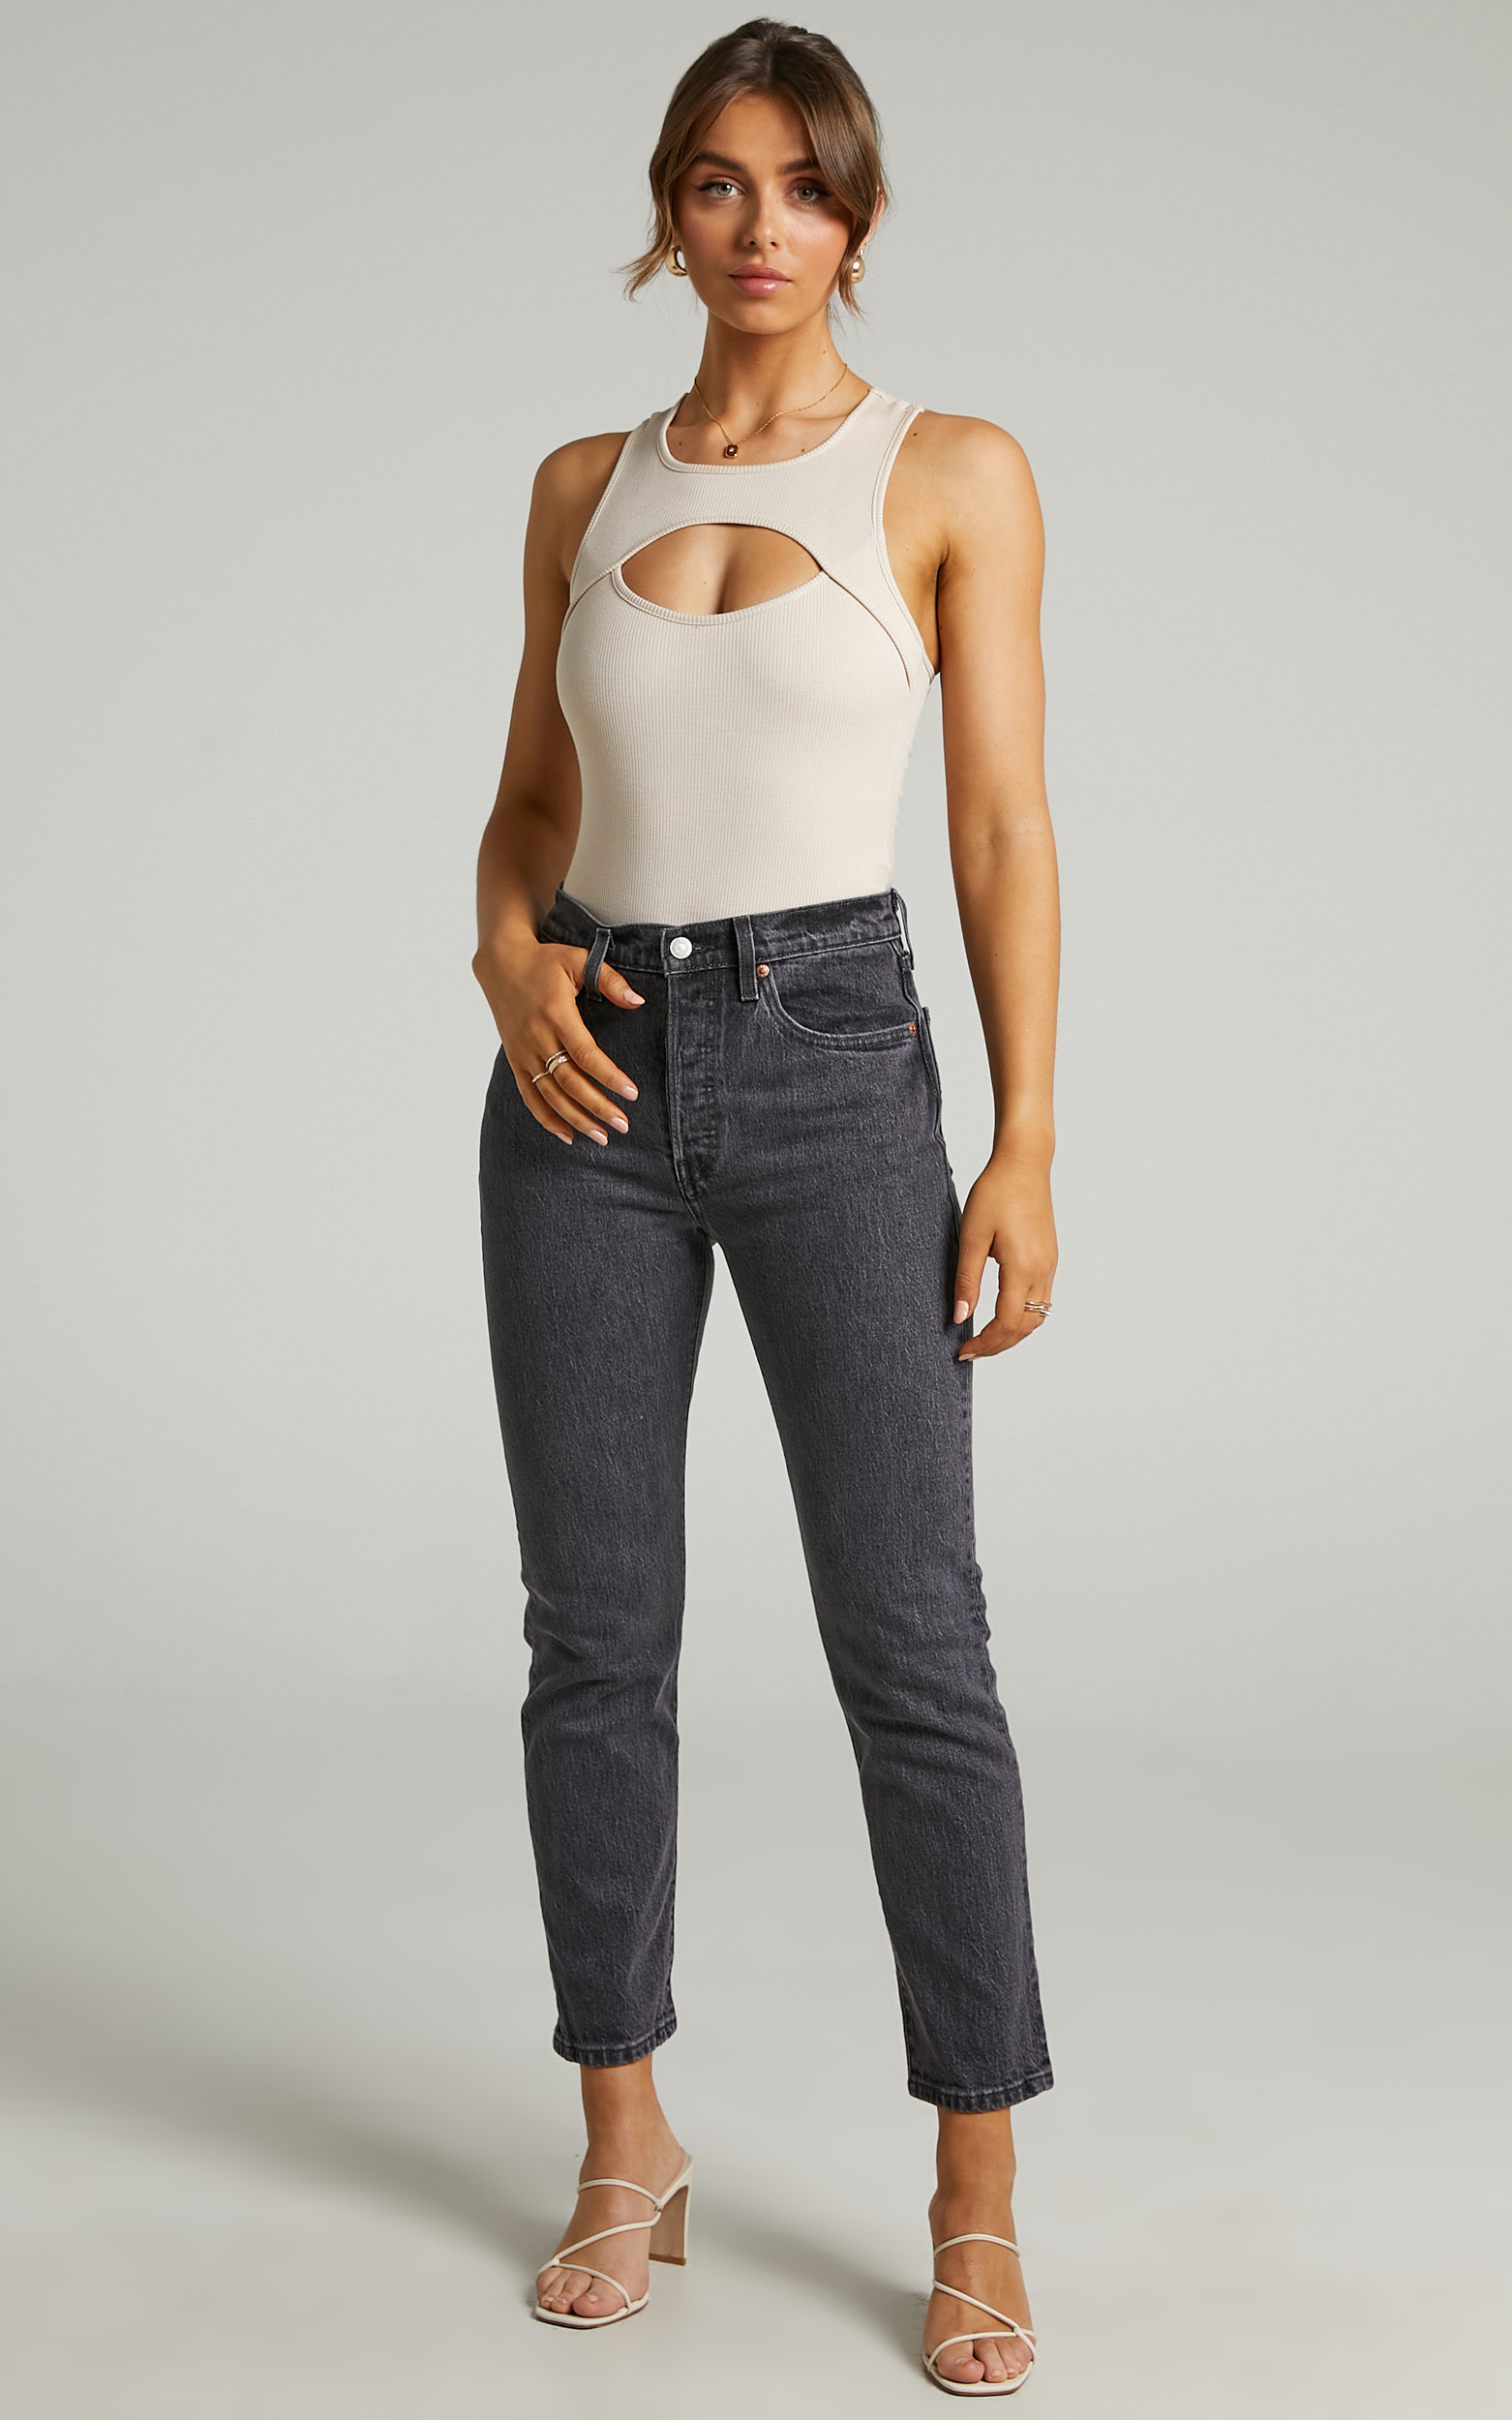 Levis - 501 Crop Jean in Cabo Fade - 06, BLK1, hi-res image number null